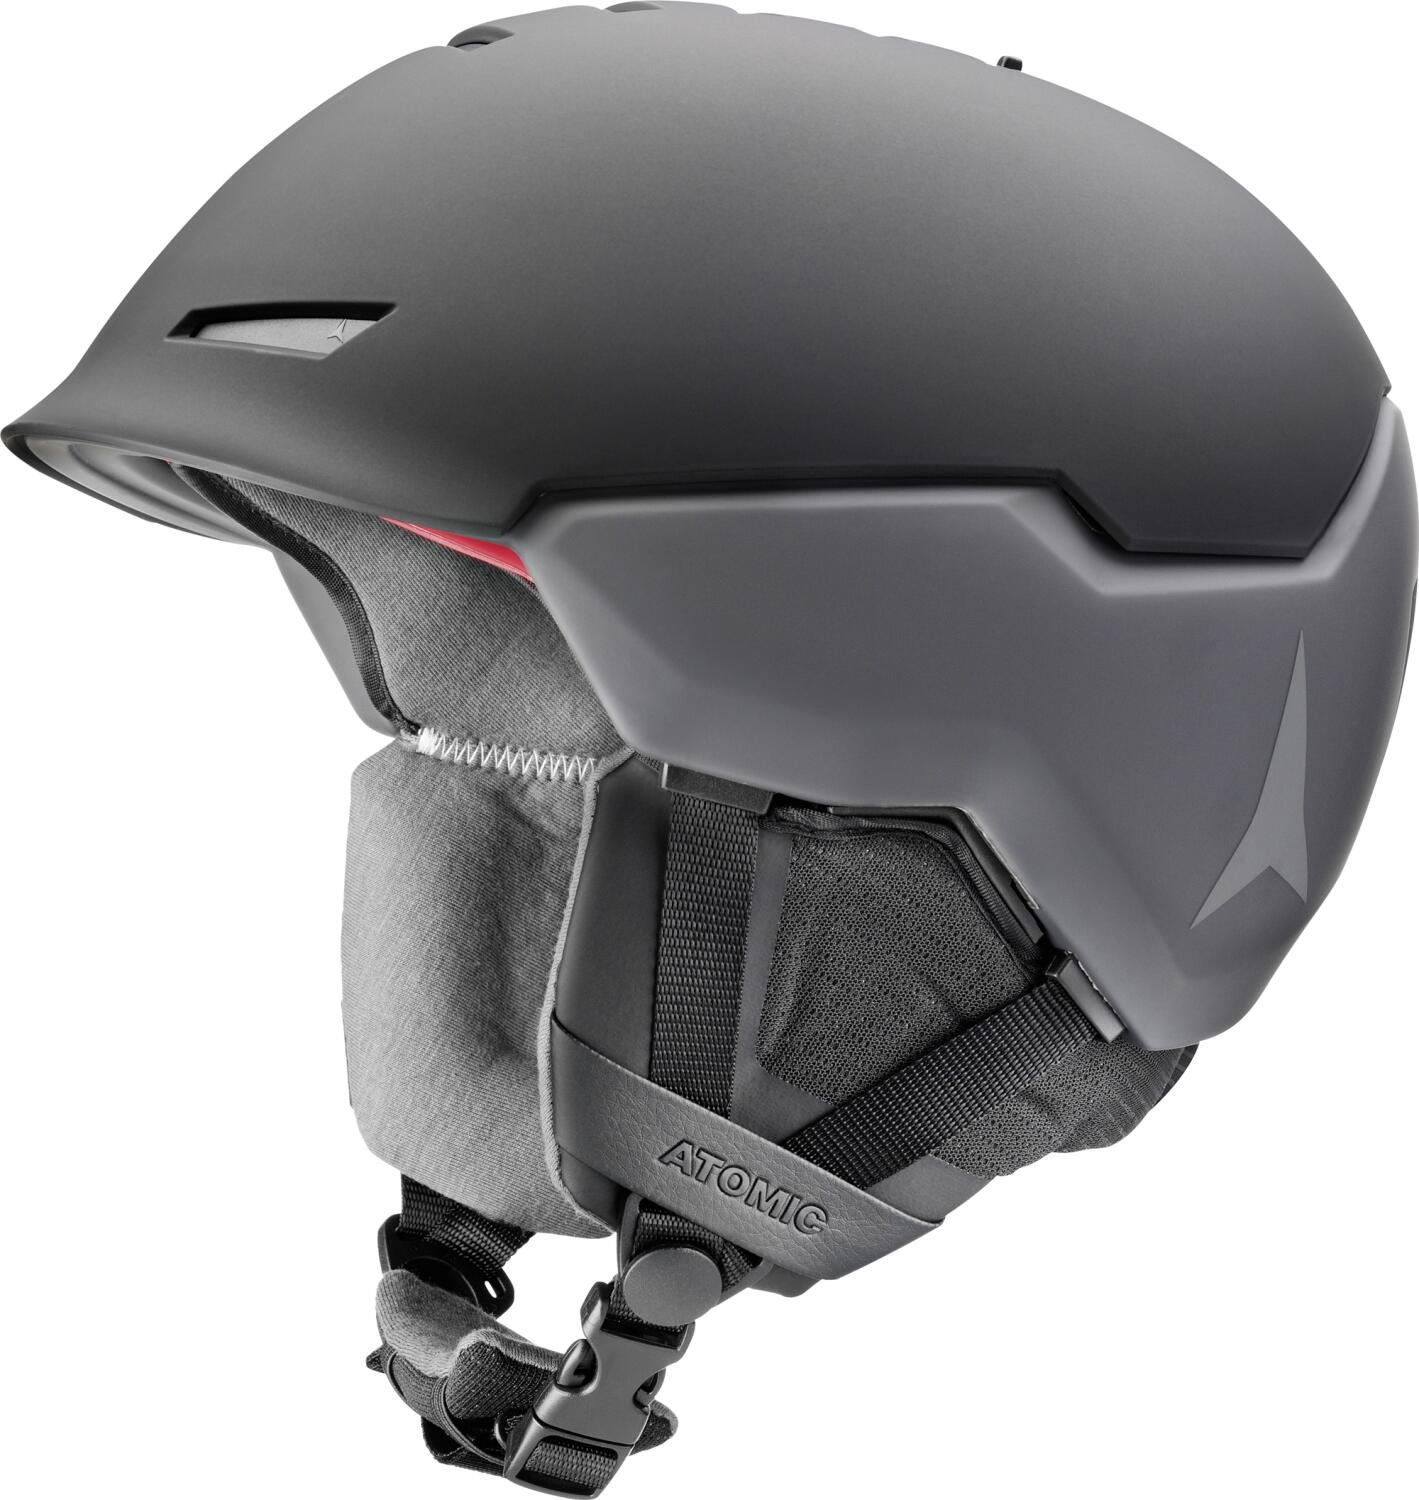 atomic-revent-amid-all-mountain-skihelm-gr-ouml-szlig-e-59-63-cm-black-